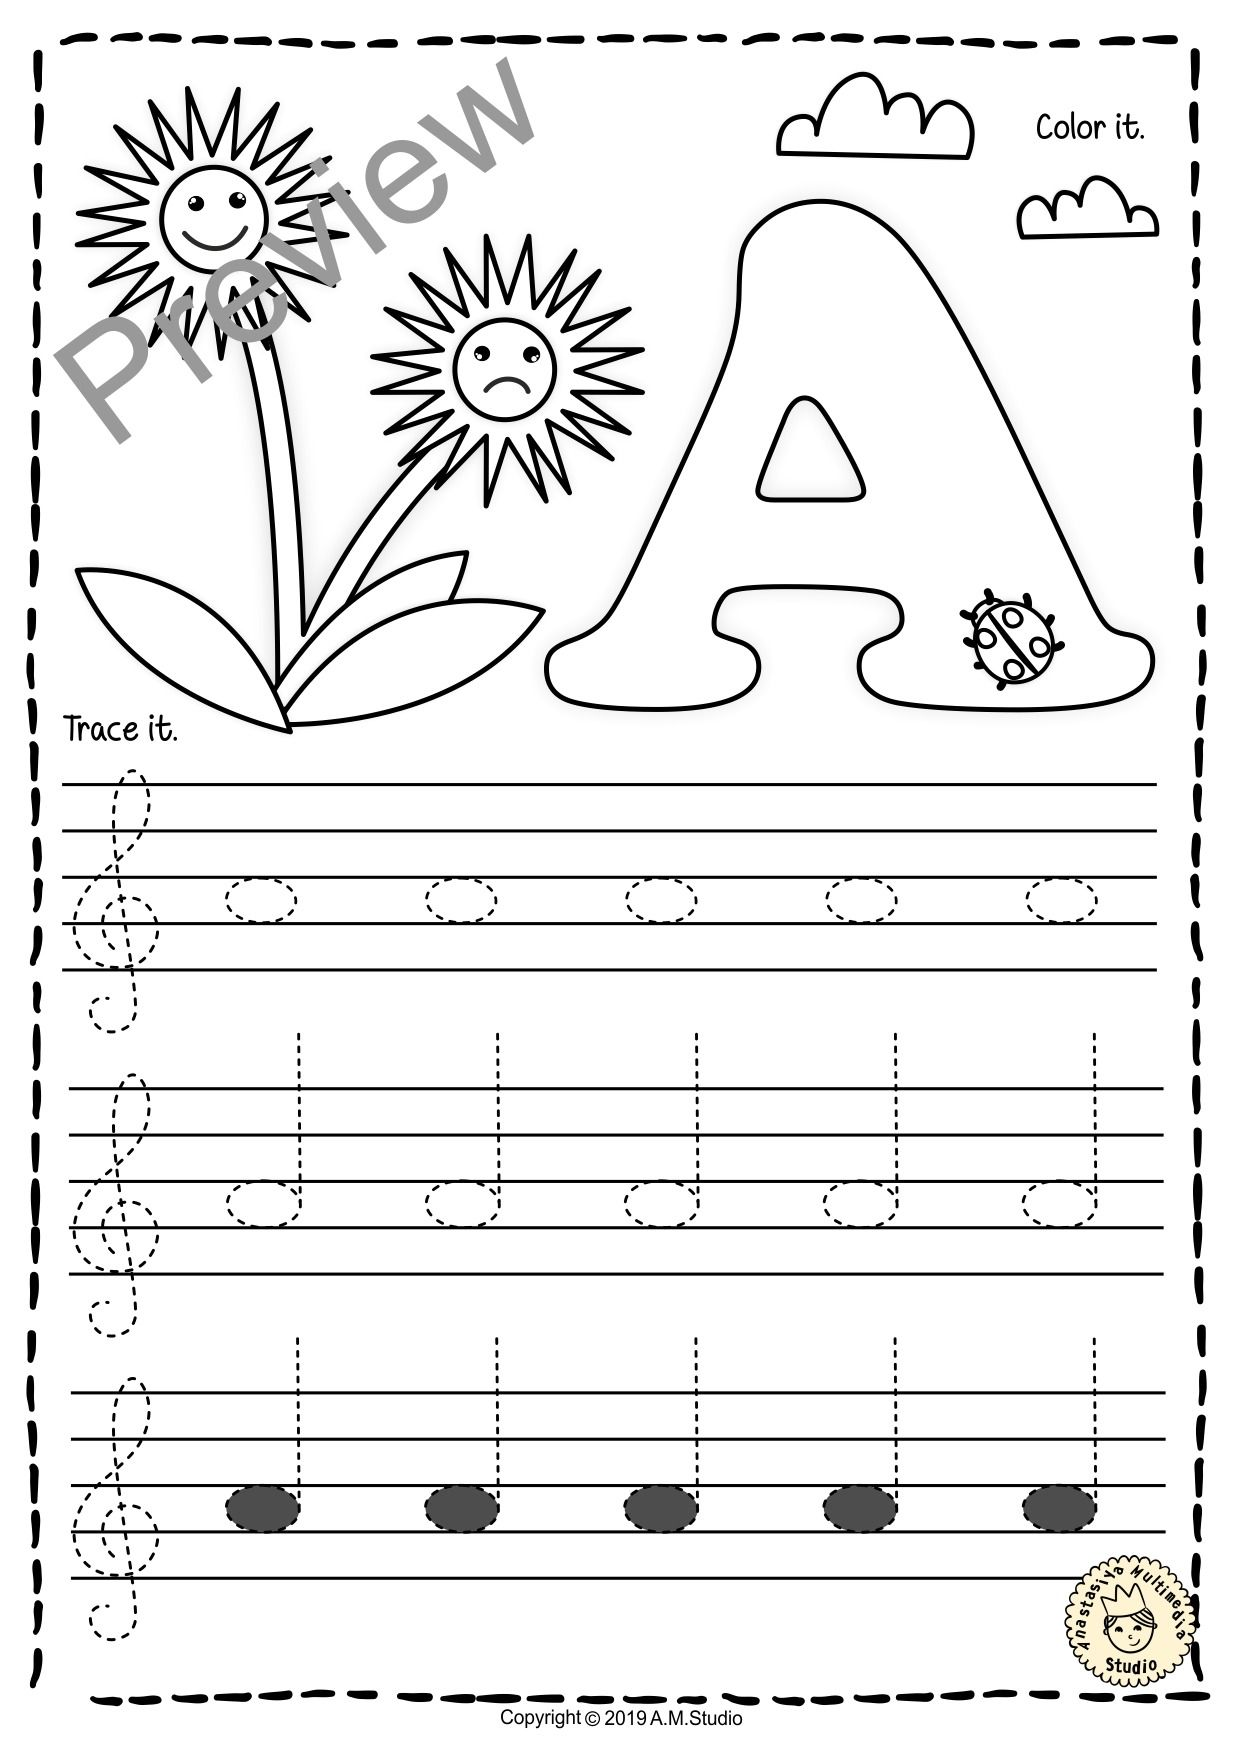 Treble Clef Tracing Music Notes Worksheets For Spring Distance Learning Music Worksheets Music Lessons For Kids Homeschool Music